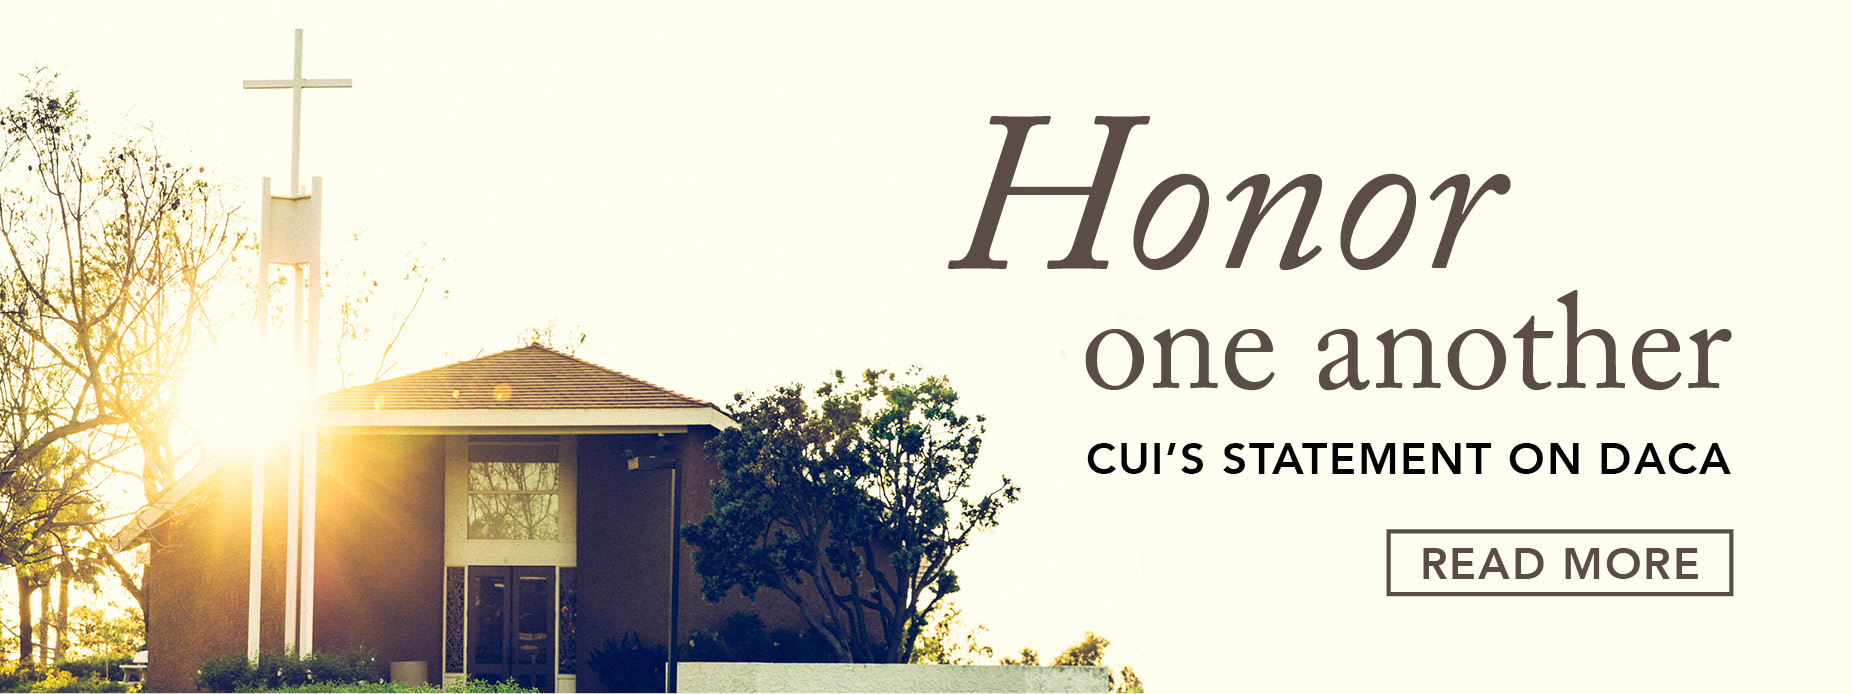 """Honor one another"" CUI's Statement on DACA"